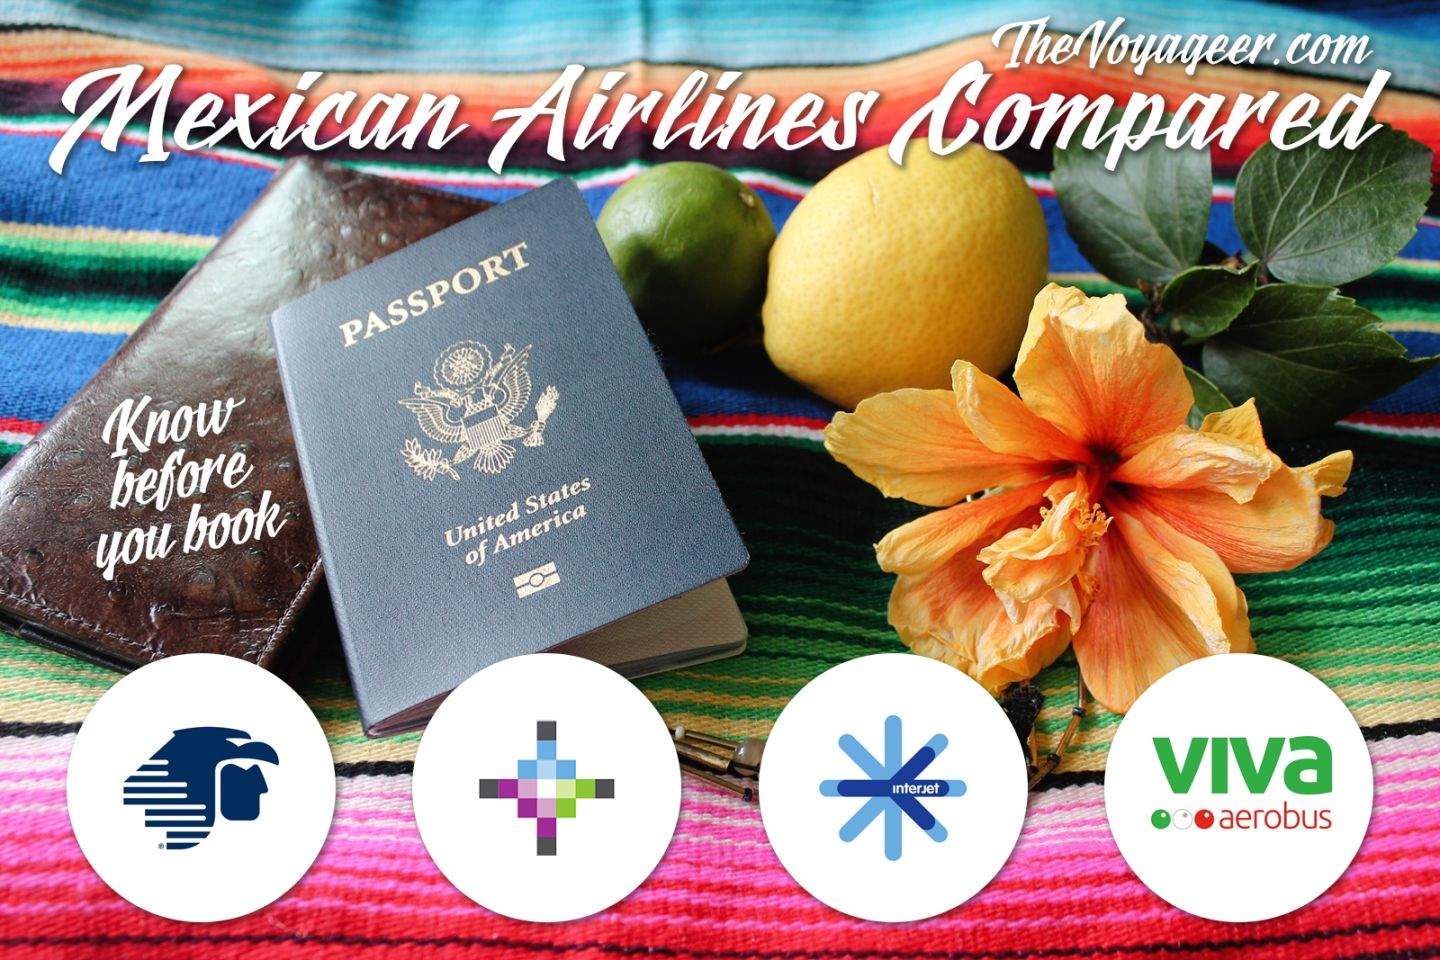 Mexican Airlines Compared // The Voyageer Airline